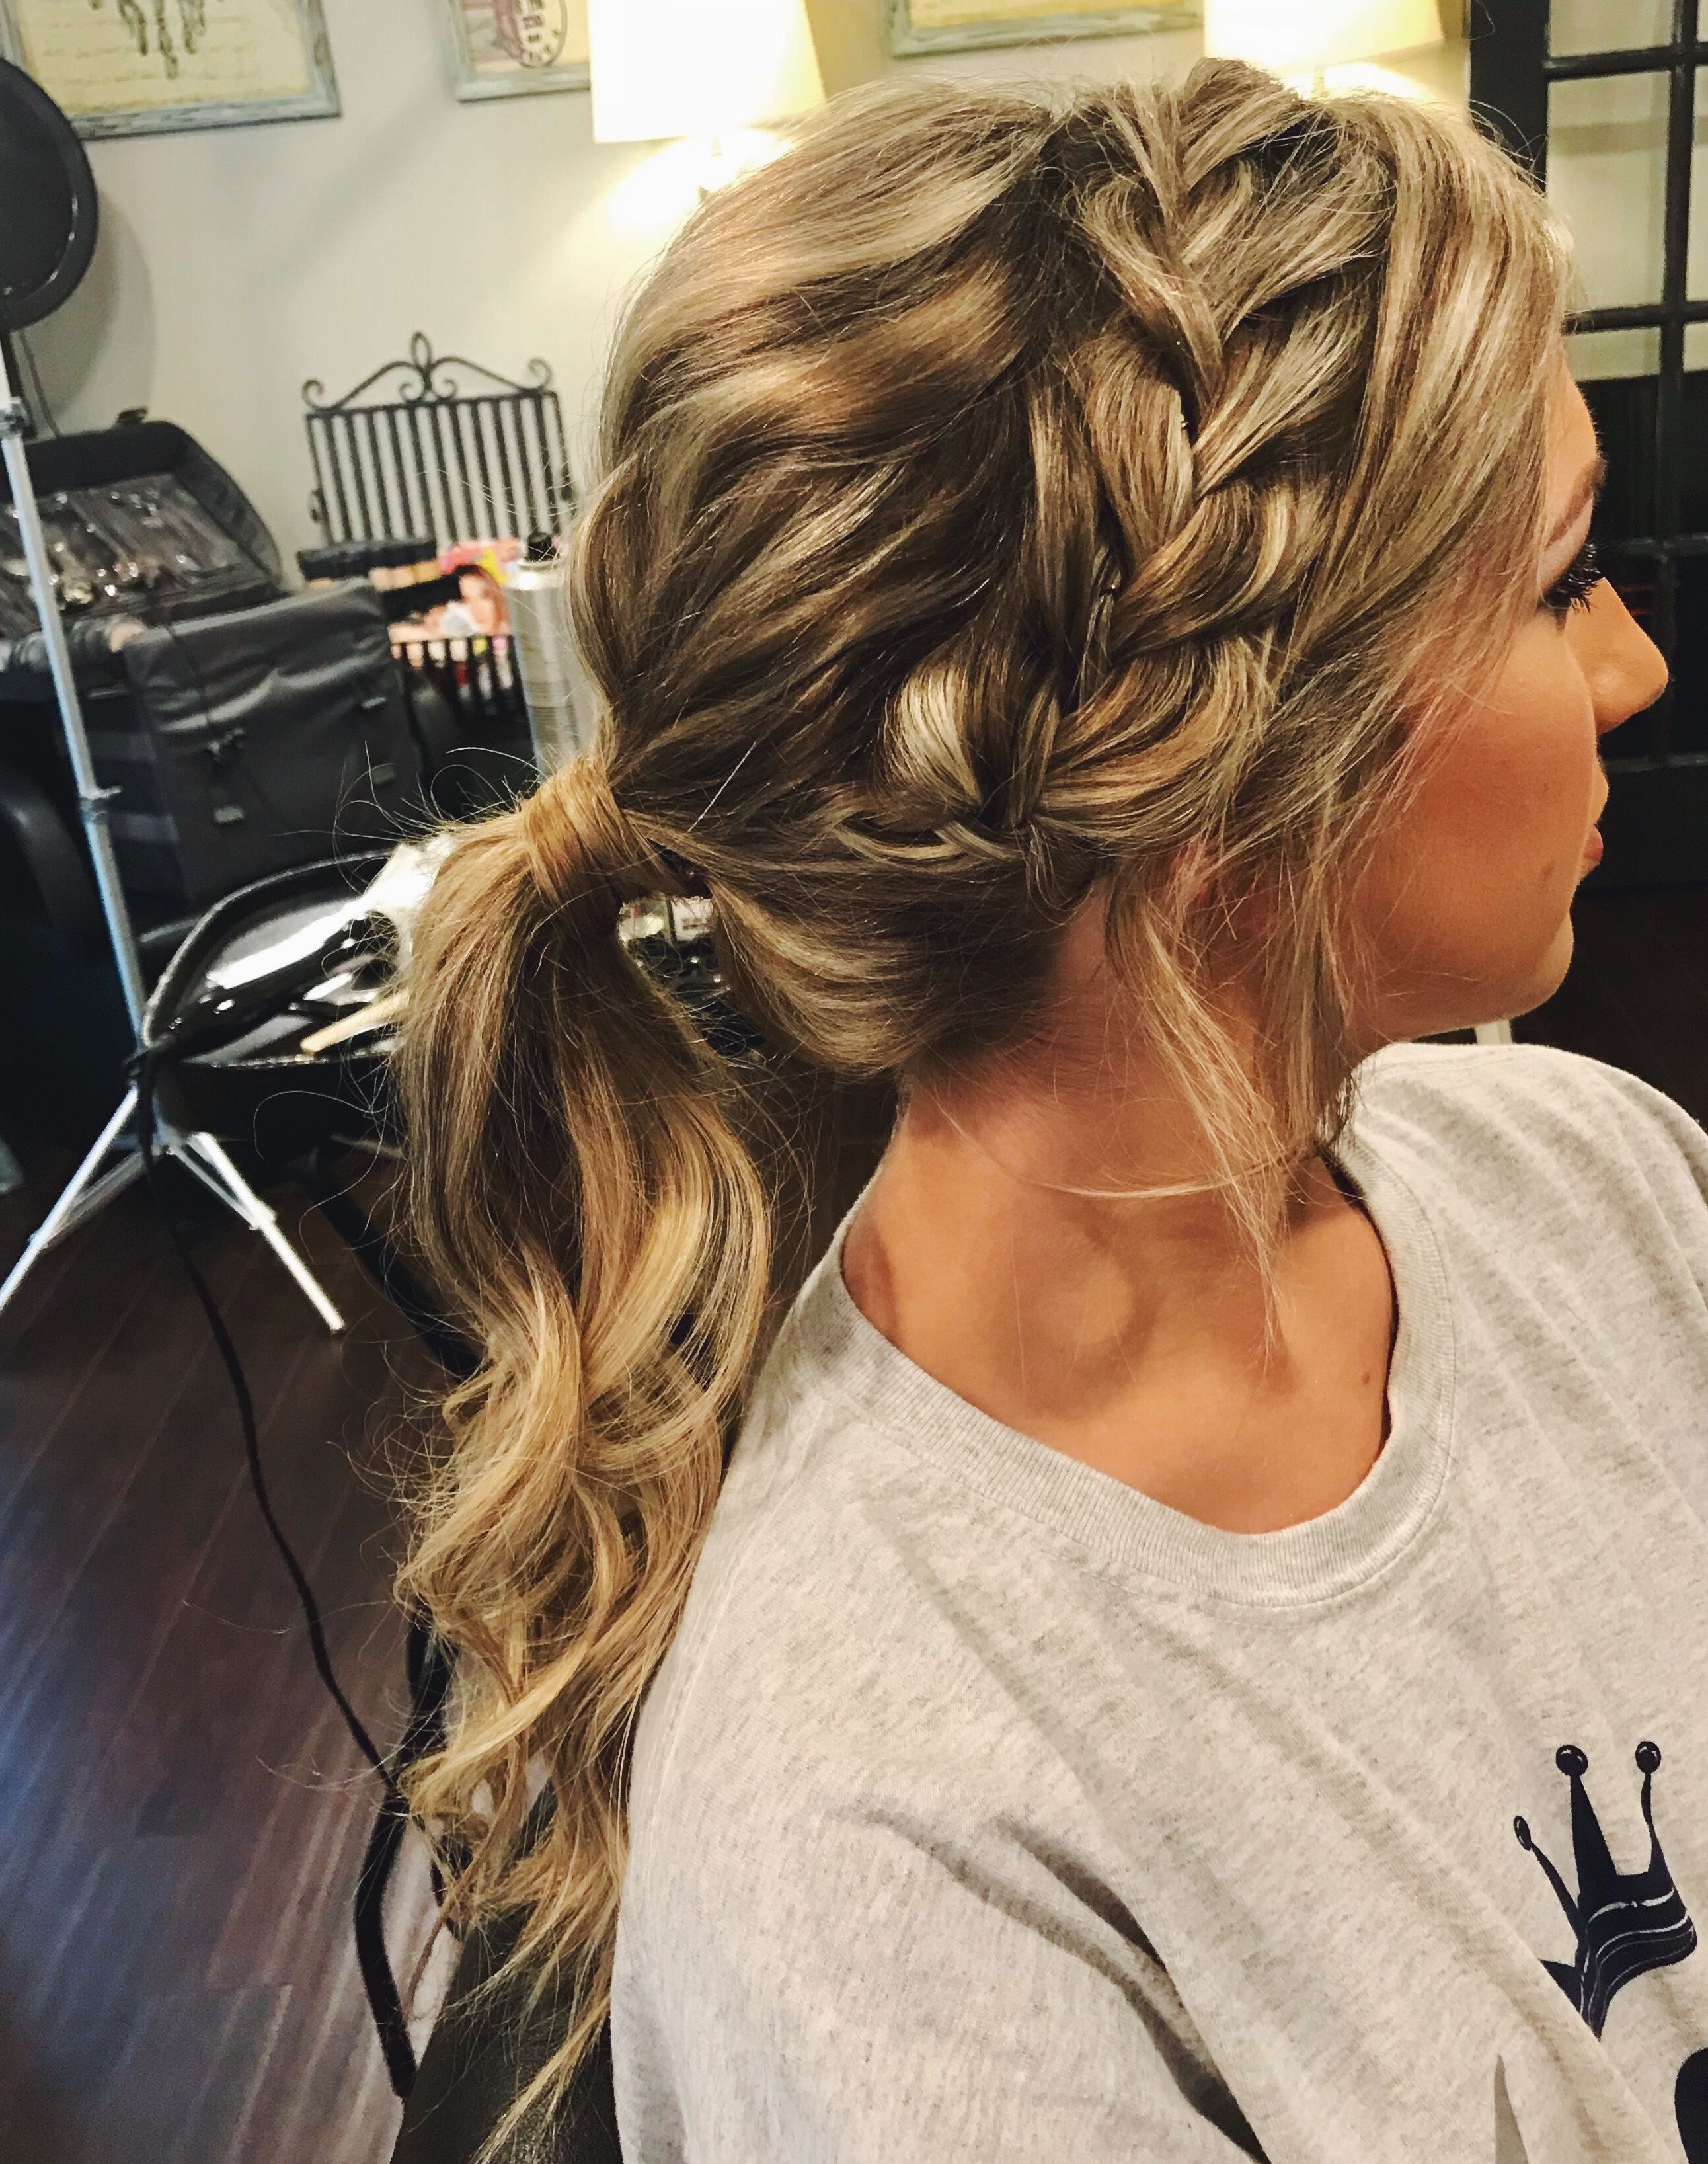 Hairstyles : Side Pony Hairstyle Ravishing Prom Hair Ponytail Updo With Regard To Famous Low Curly Side Ponytail Hairstyles For Prom (View 7 of 20)